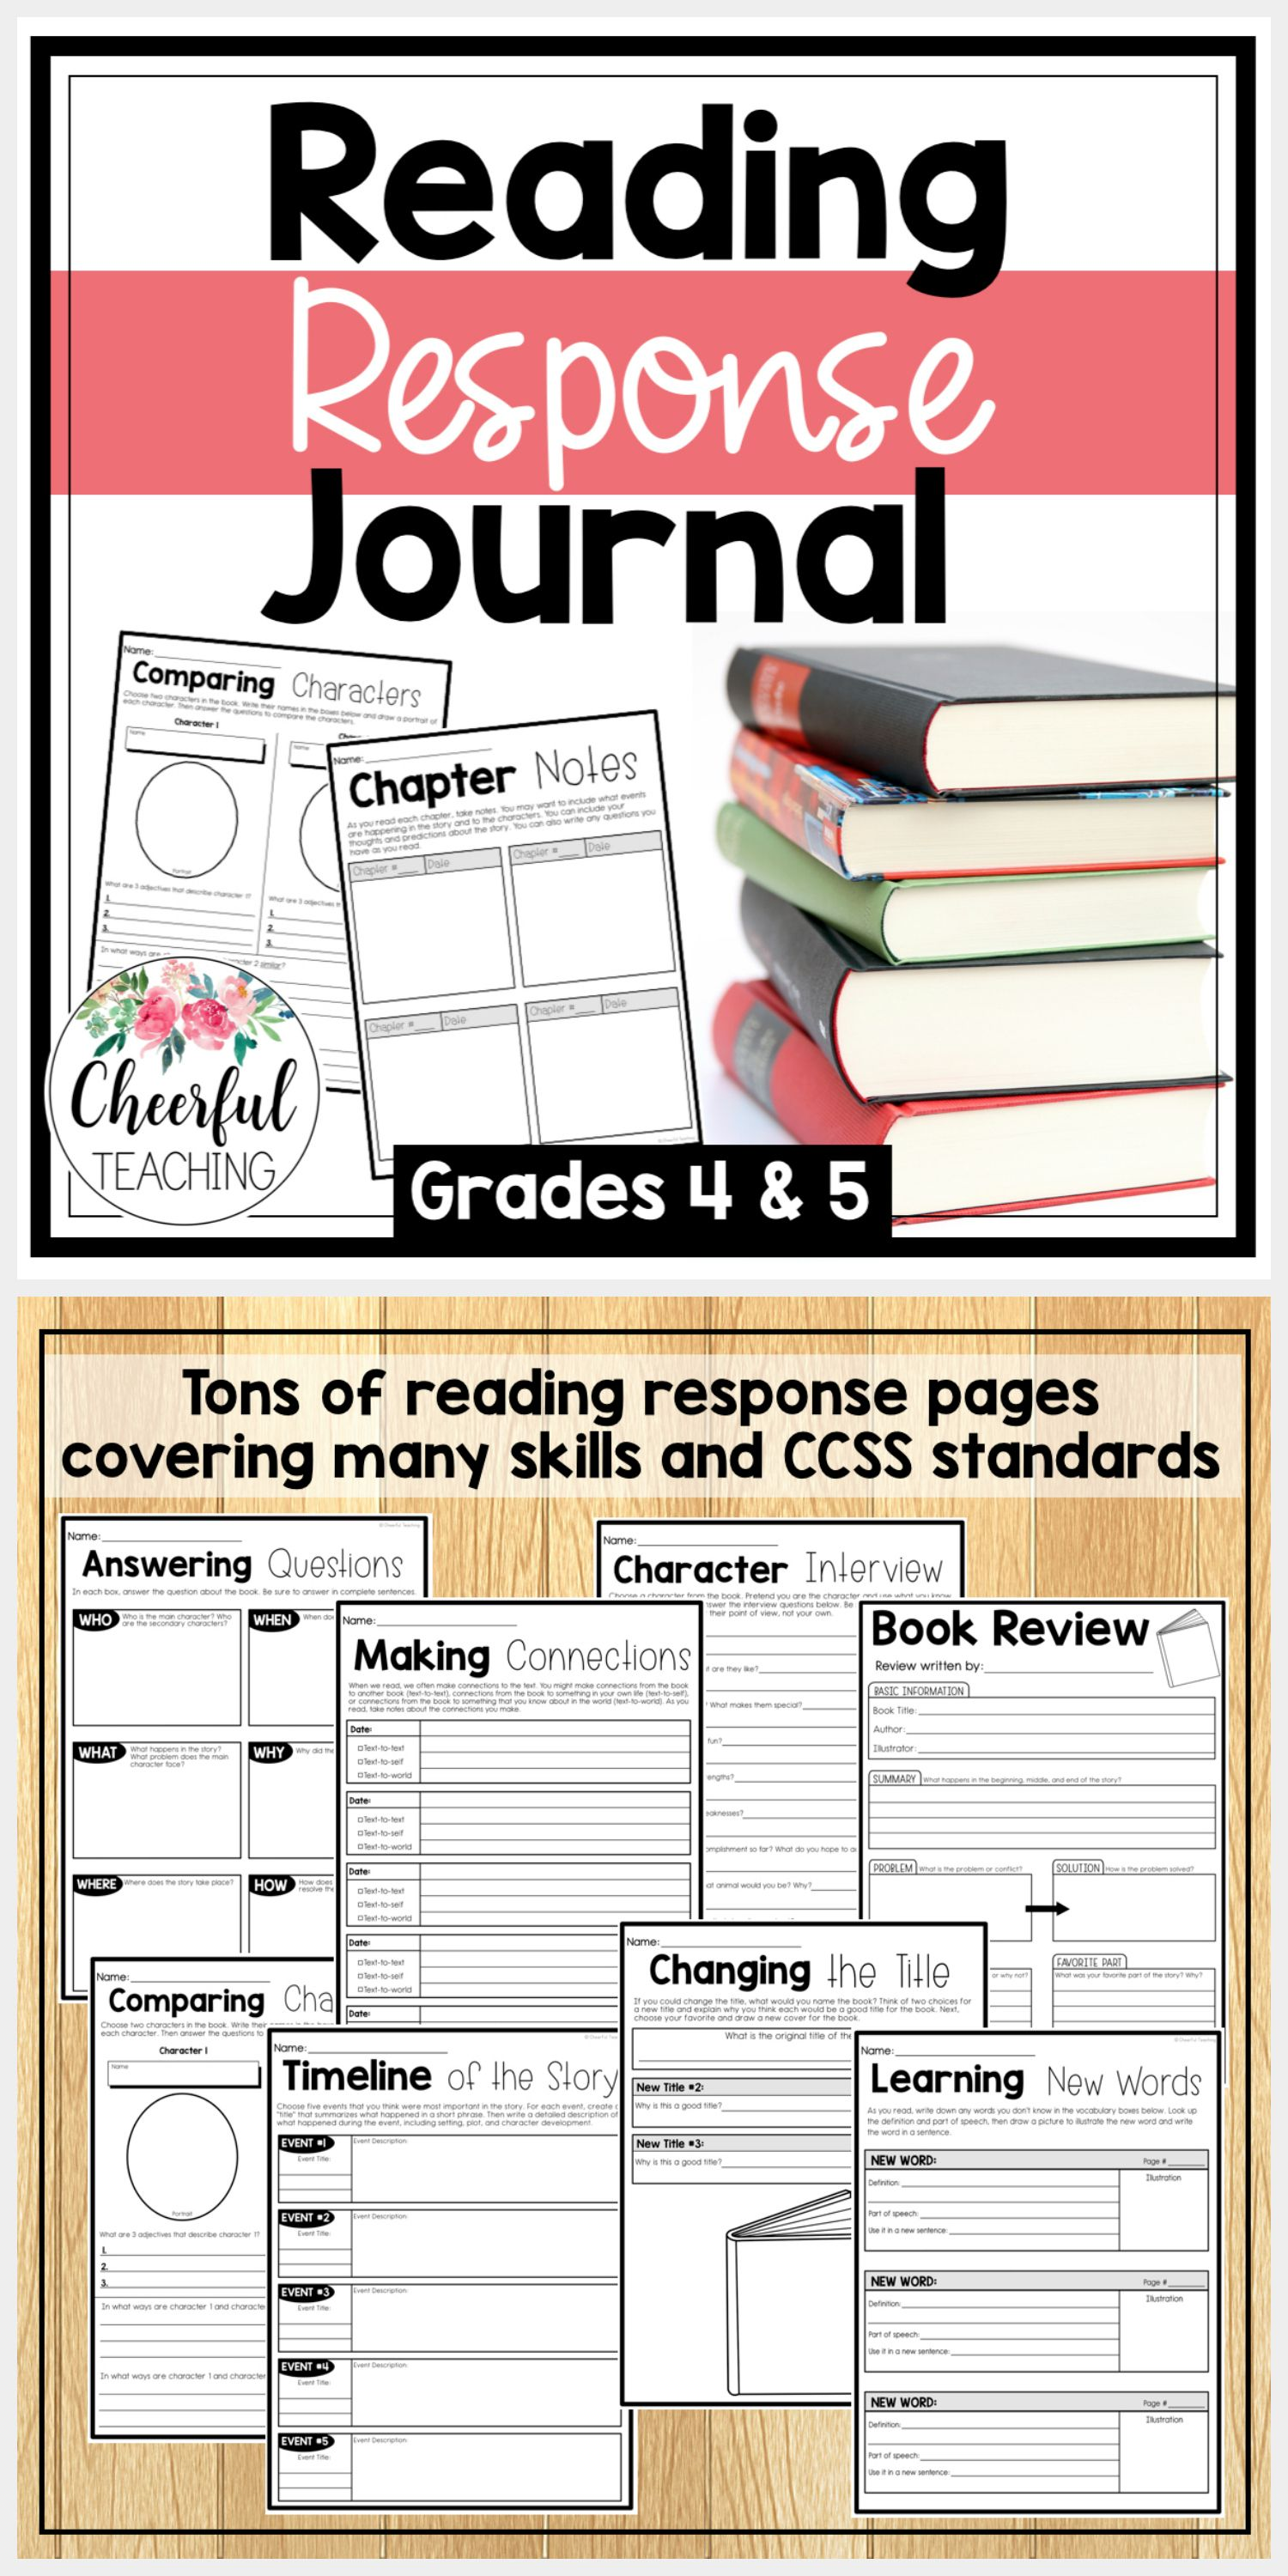 hight resolution of Reading Response Journal for grades 4-5. Includes tons of reading response  worksheets an…   Reading response journals